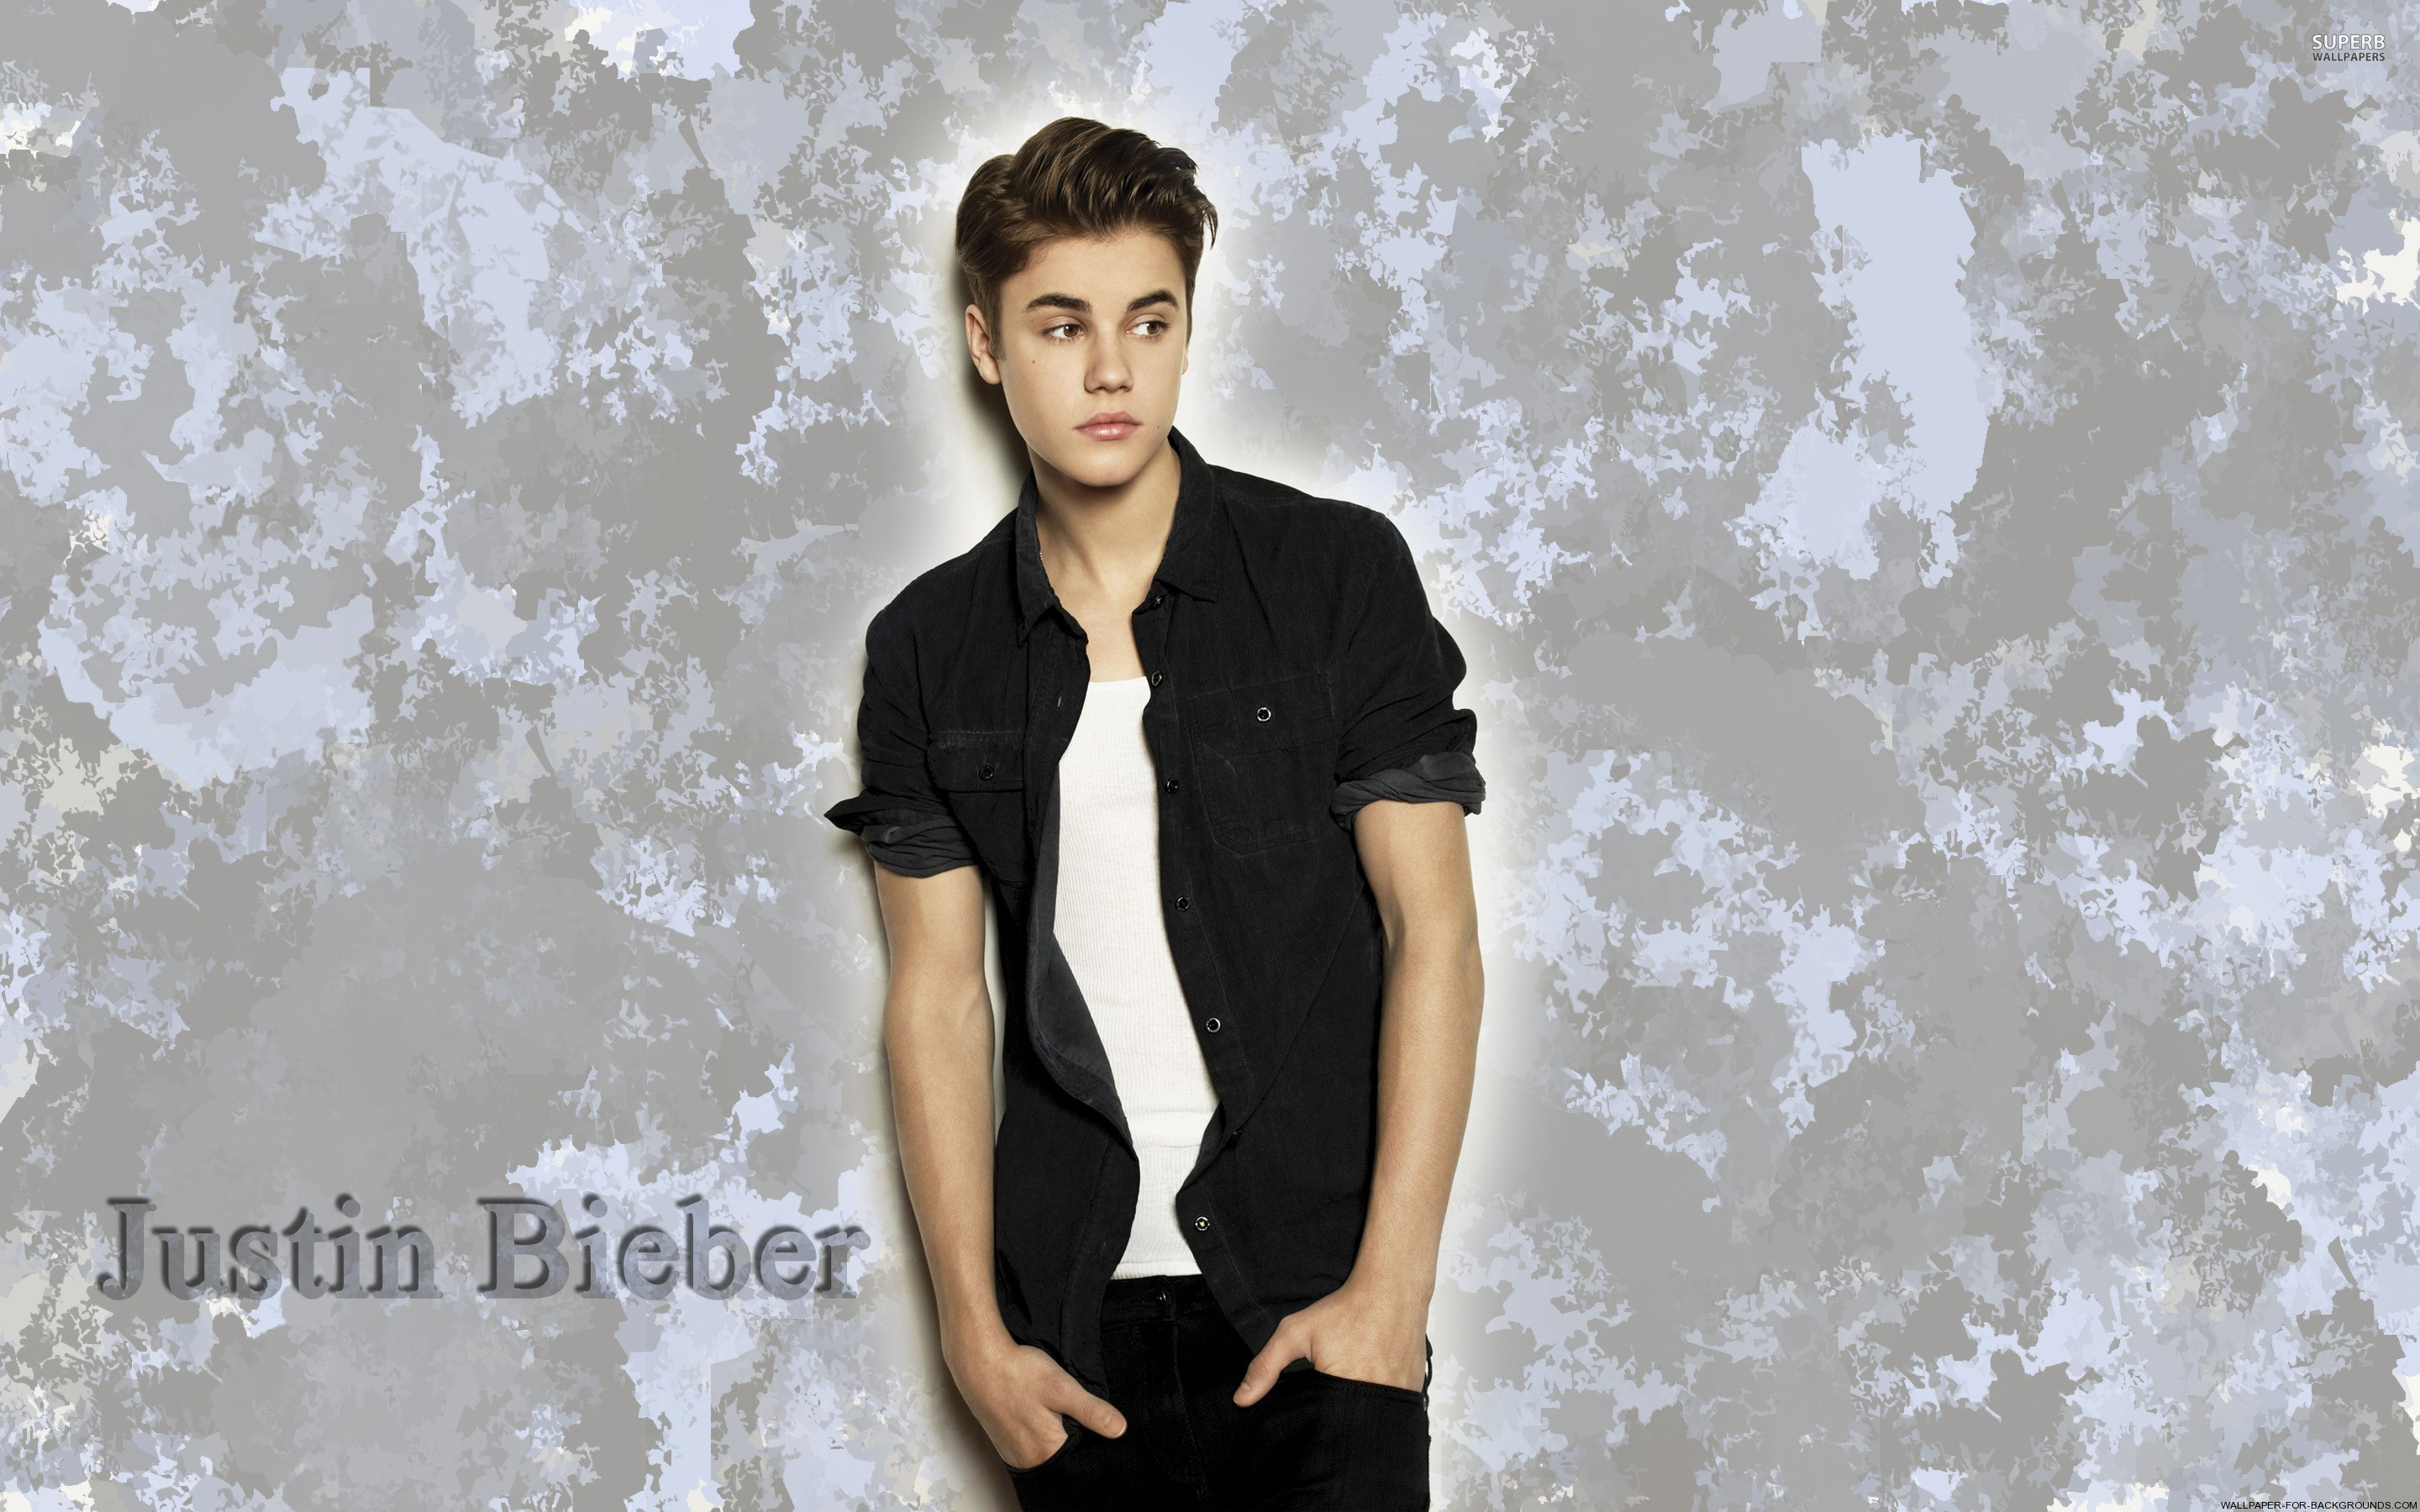 Justin Bieber Dark Background Wallpaper Wide Zoom